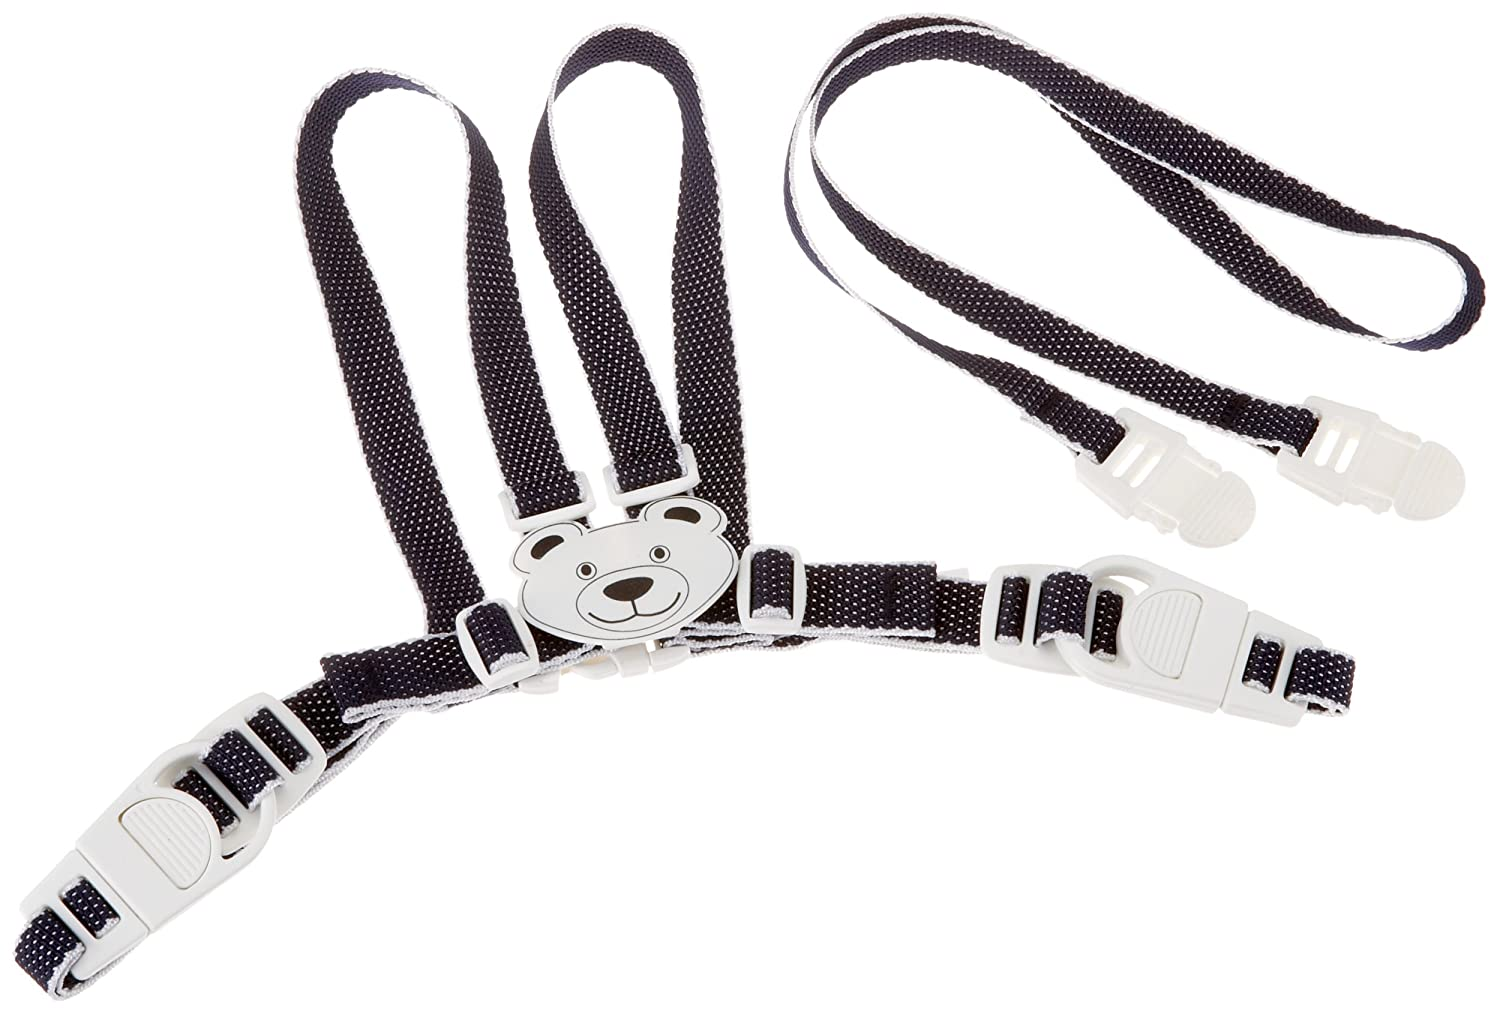 Clippasafe Easy Wash Harness & Reins (Character Navy White) Clippasafe Ltd CL048 Baby Stroller